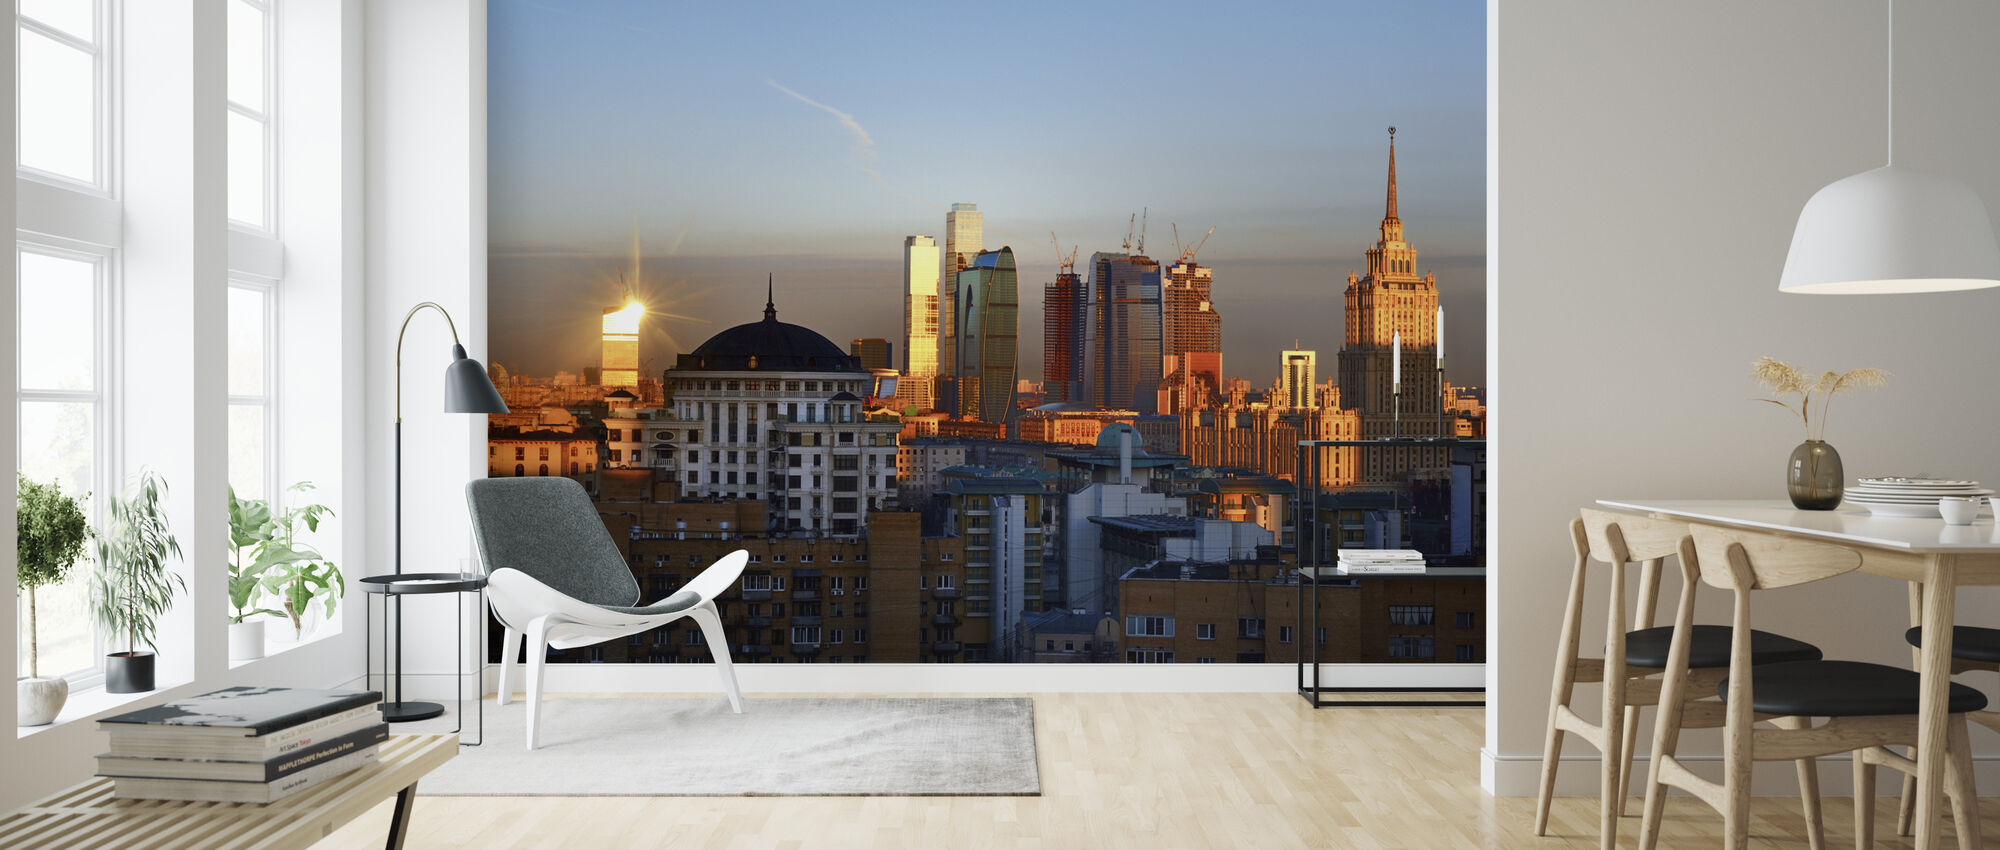 Moscow Skyline at Sunrise - Wallpaper - Living Room